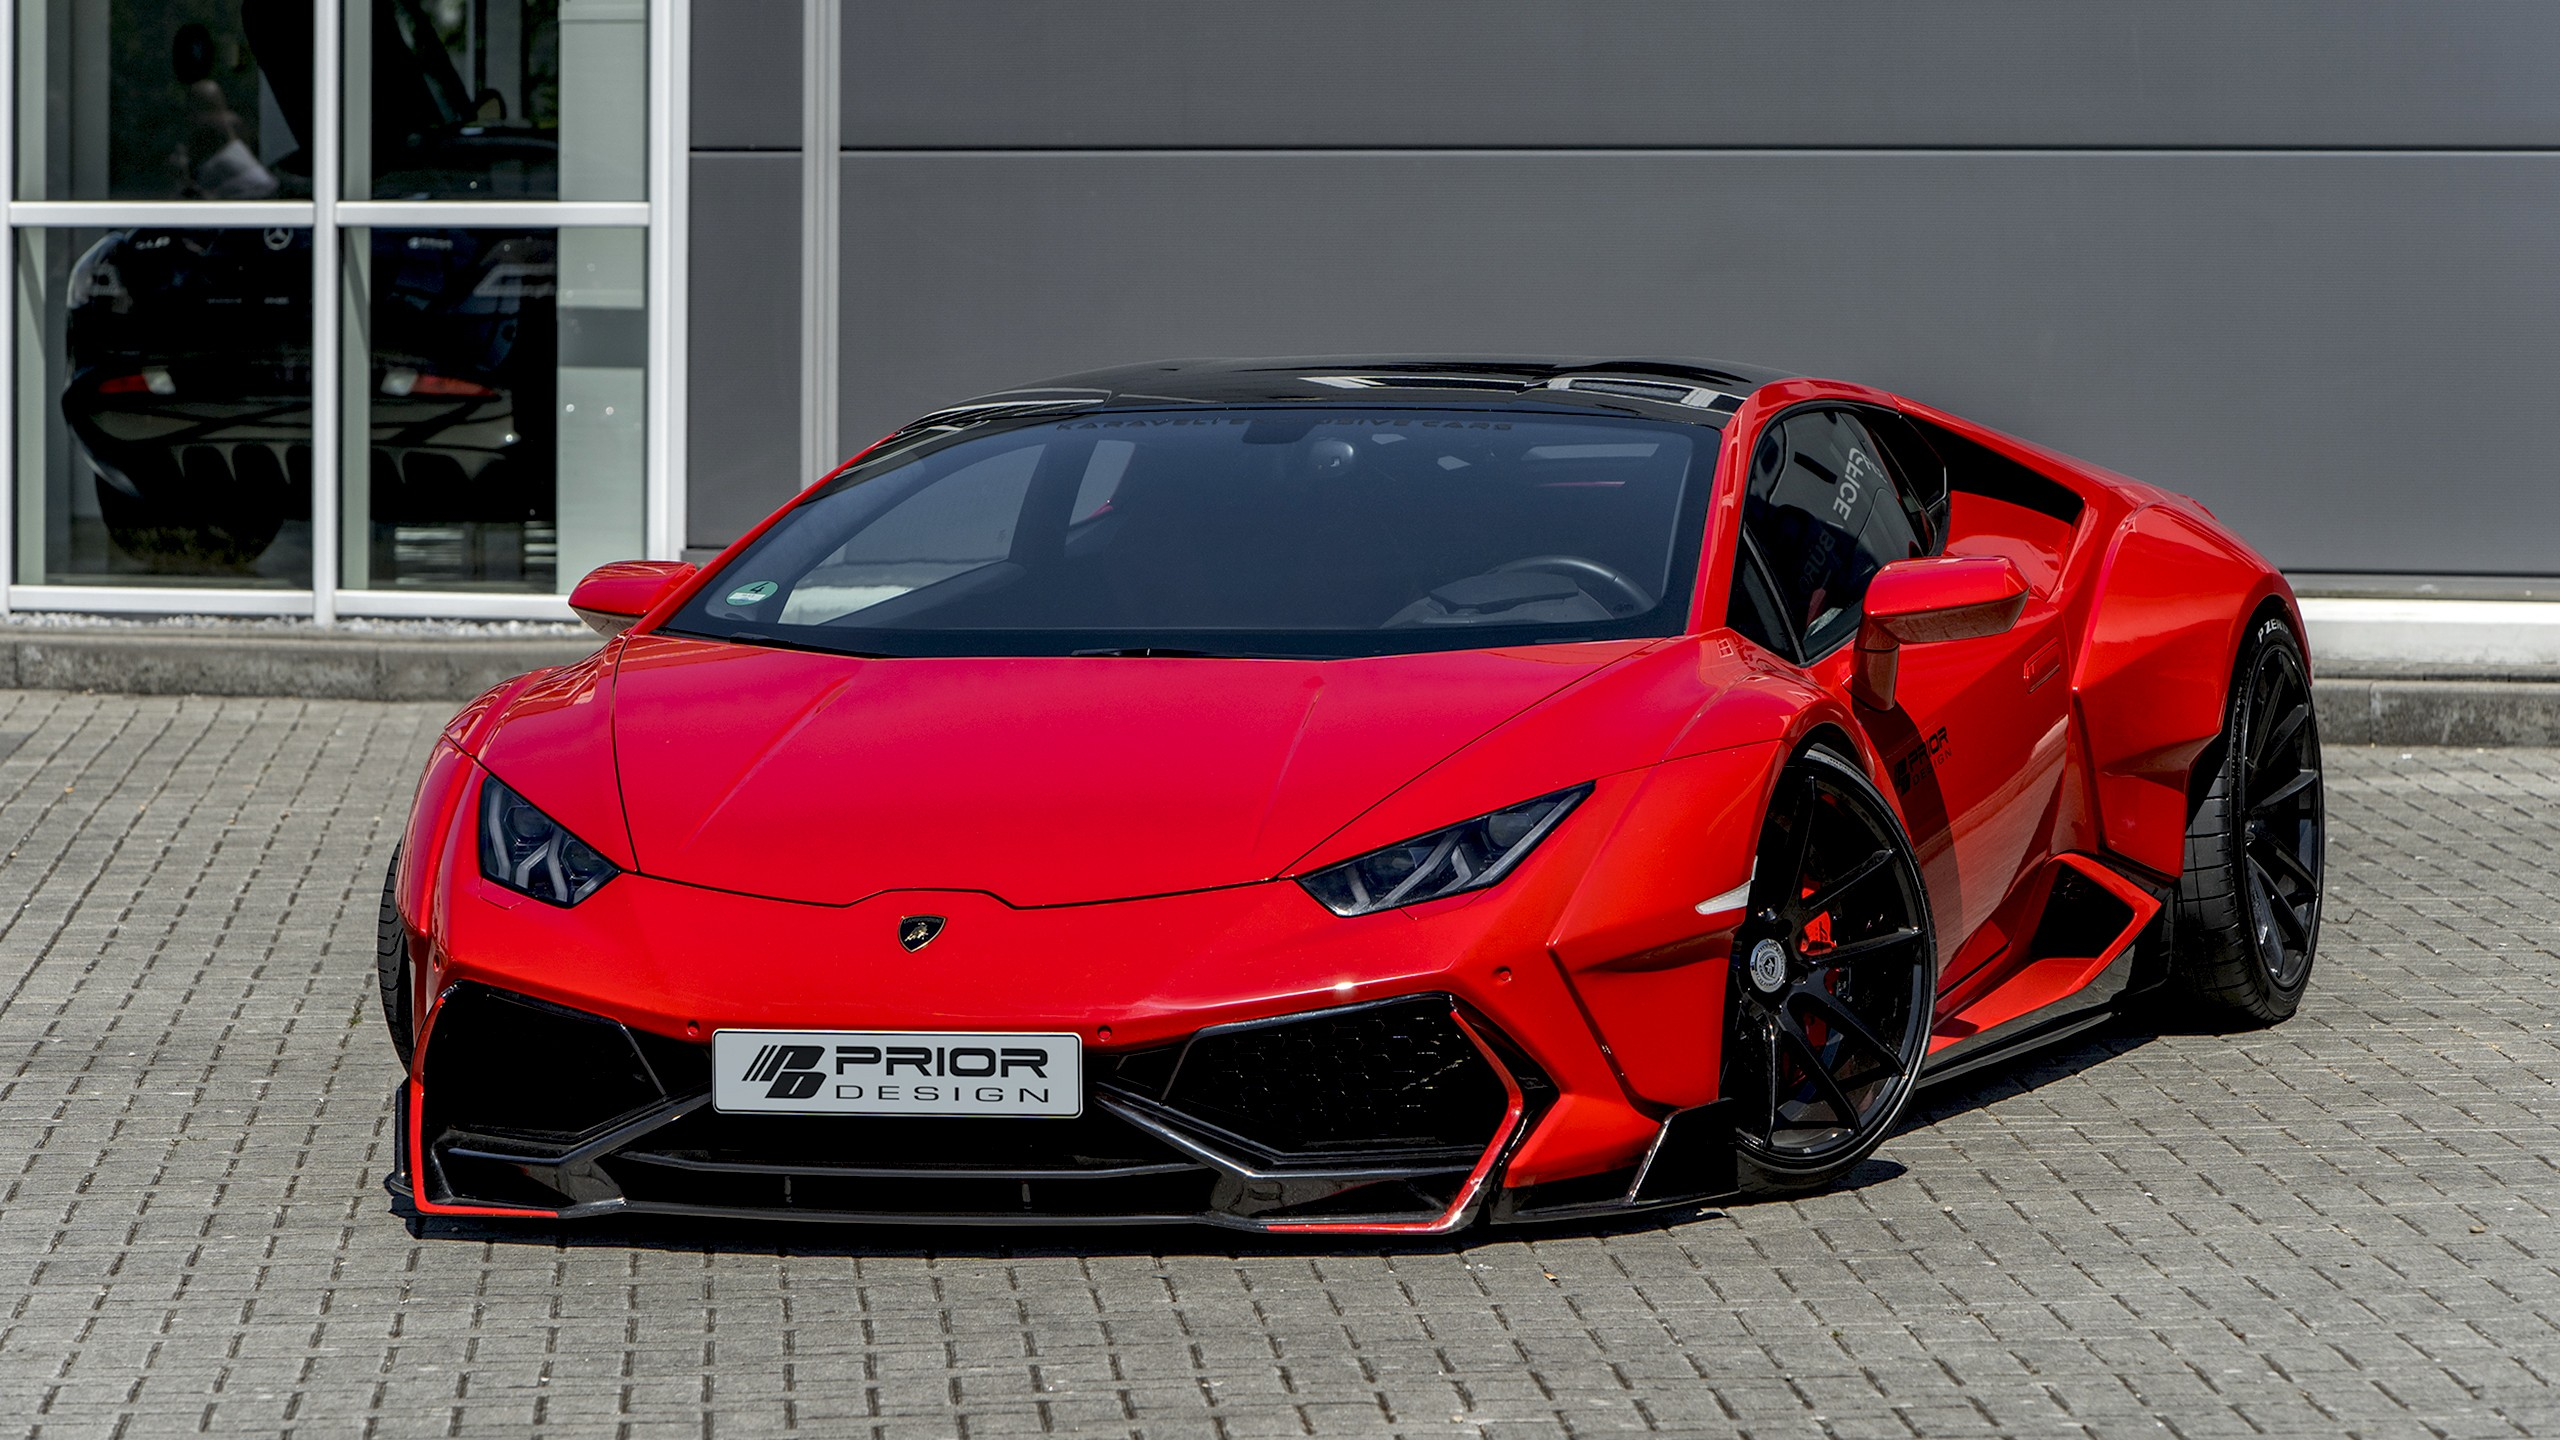 lamborghini huracan prior design pdlp610wb widebody